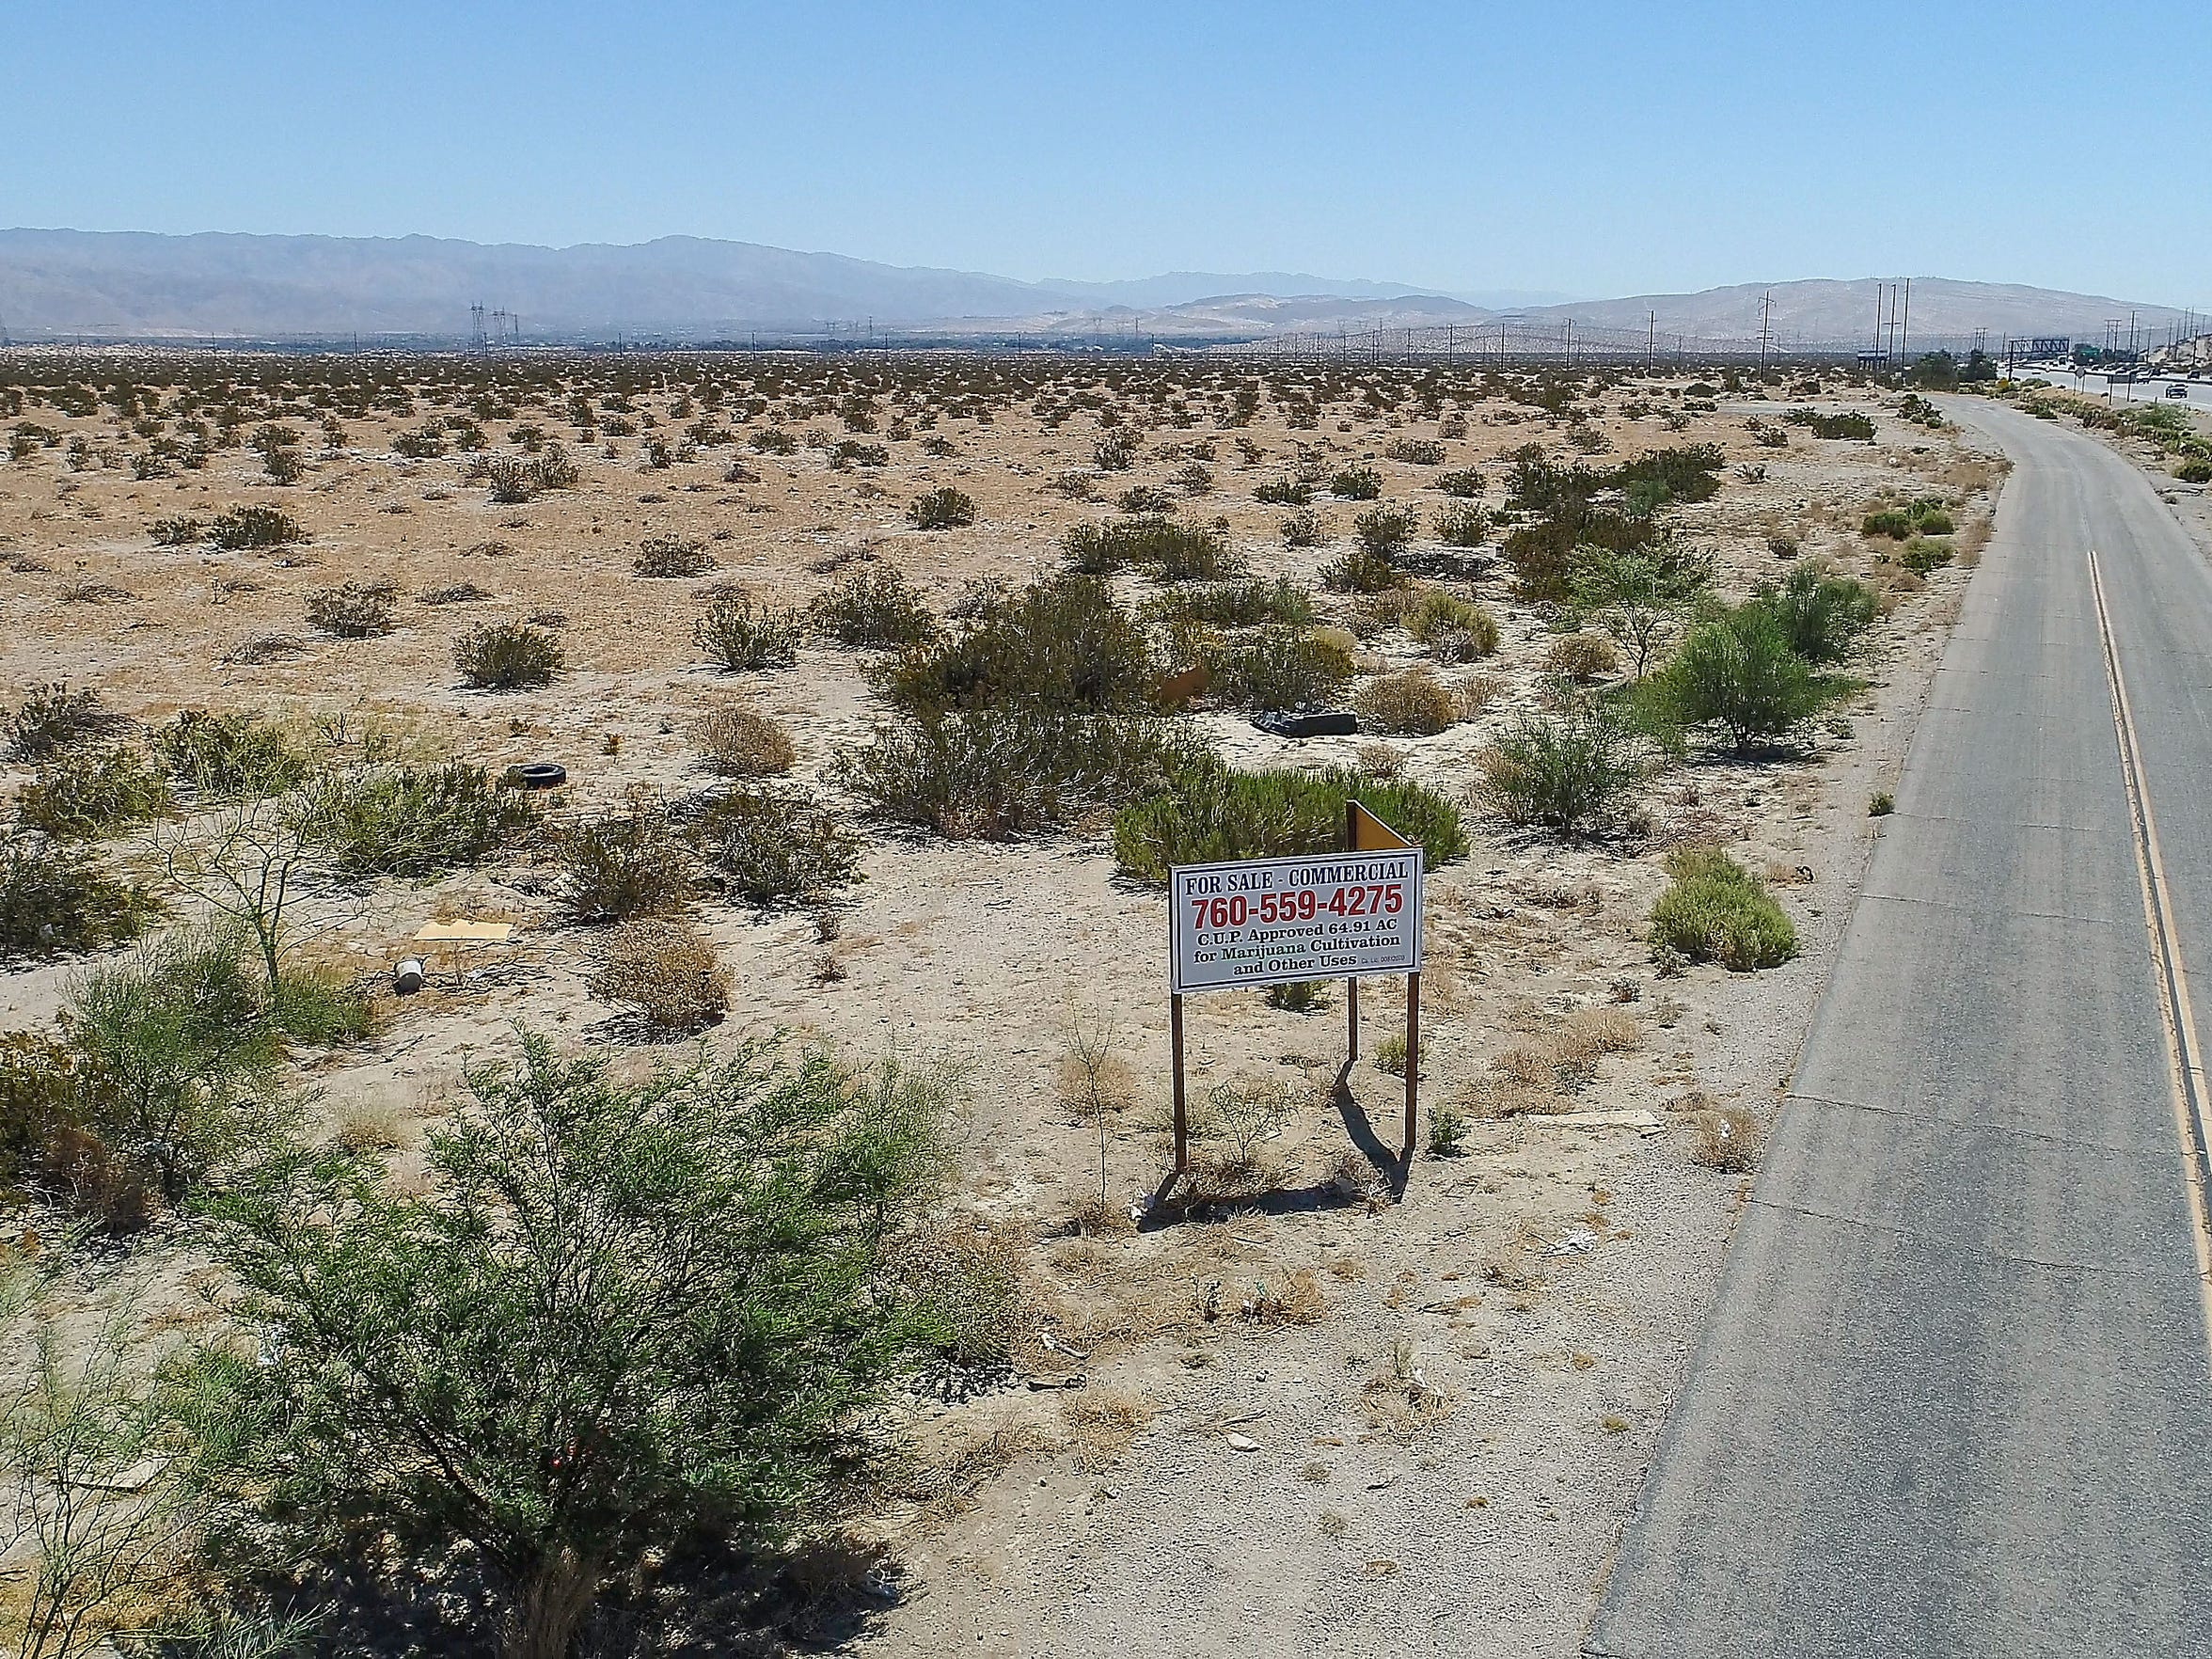 A marijuana grow facility was being considered for developement on this large chunk of land at Interstate 10 and Indian Canyon, June 22, 2018.